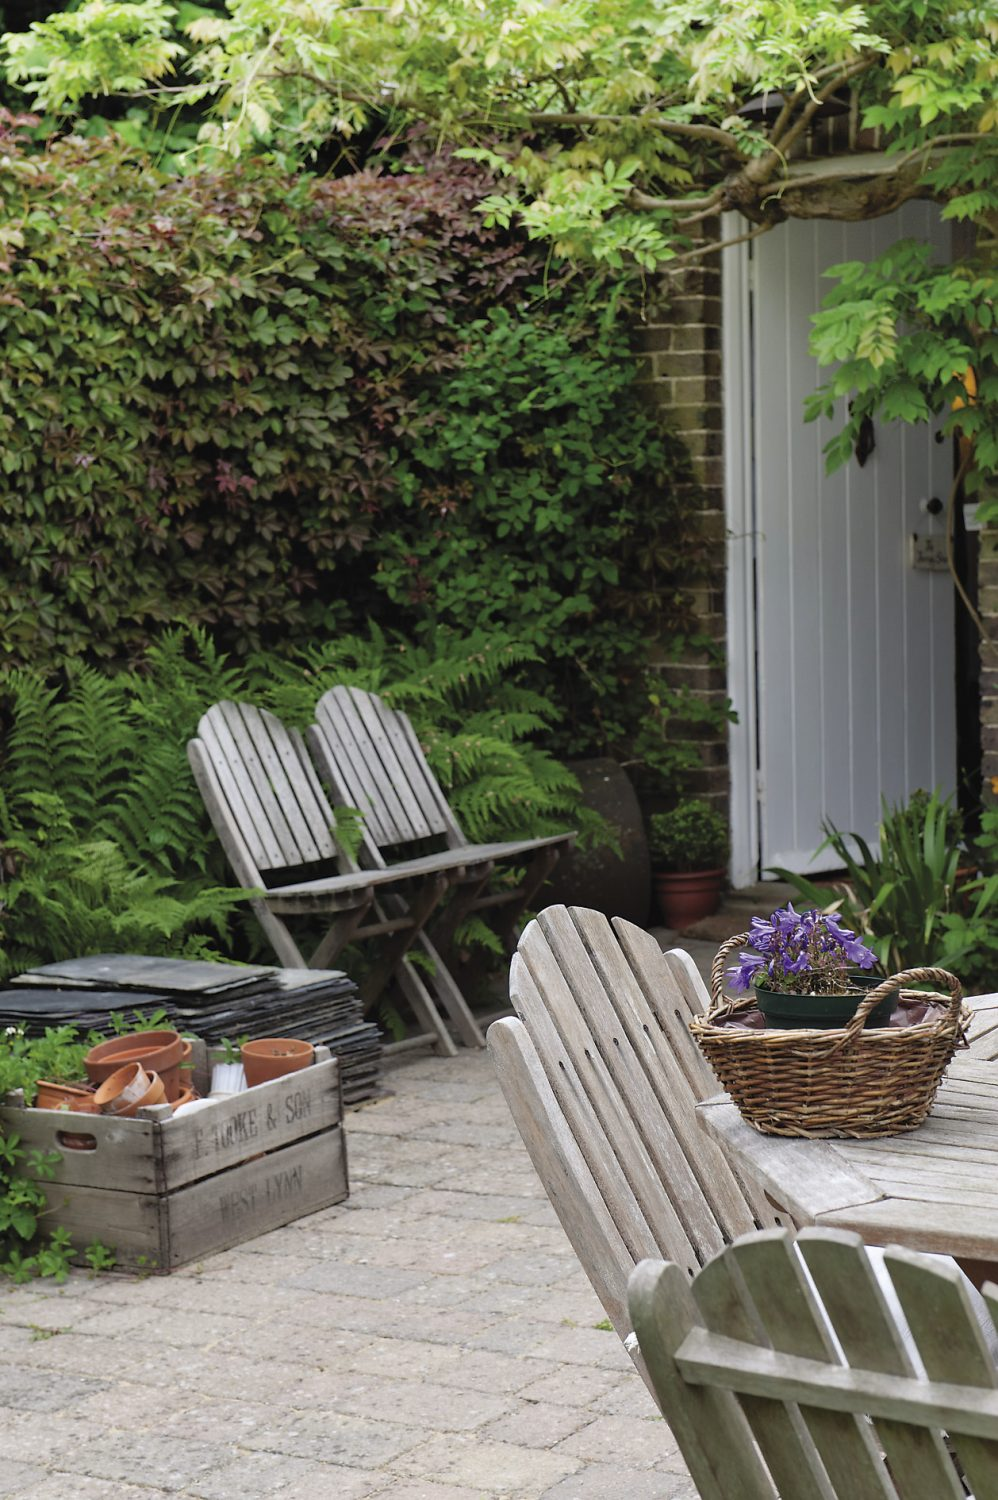 At the very end of the garden is Ann's Therapy Shed, formerly a carpenter's workshop